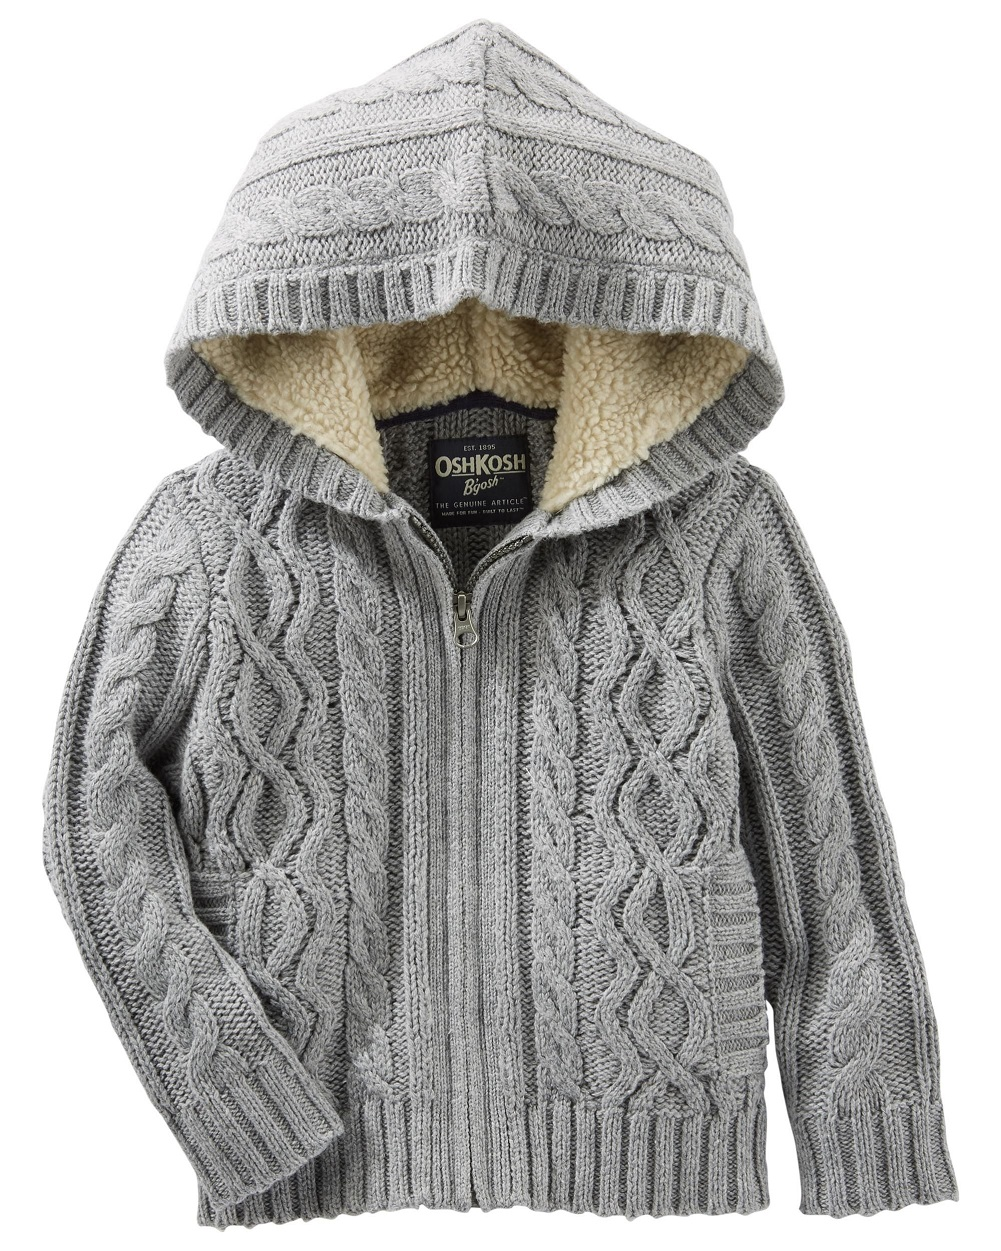 Carter's Little Boys' Grey Hooded Cable Knit Zip-Up (4 Kids)